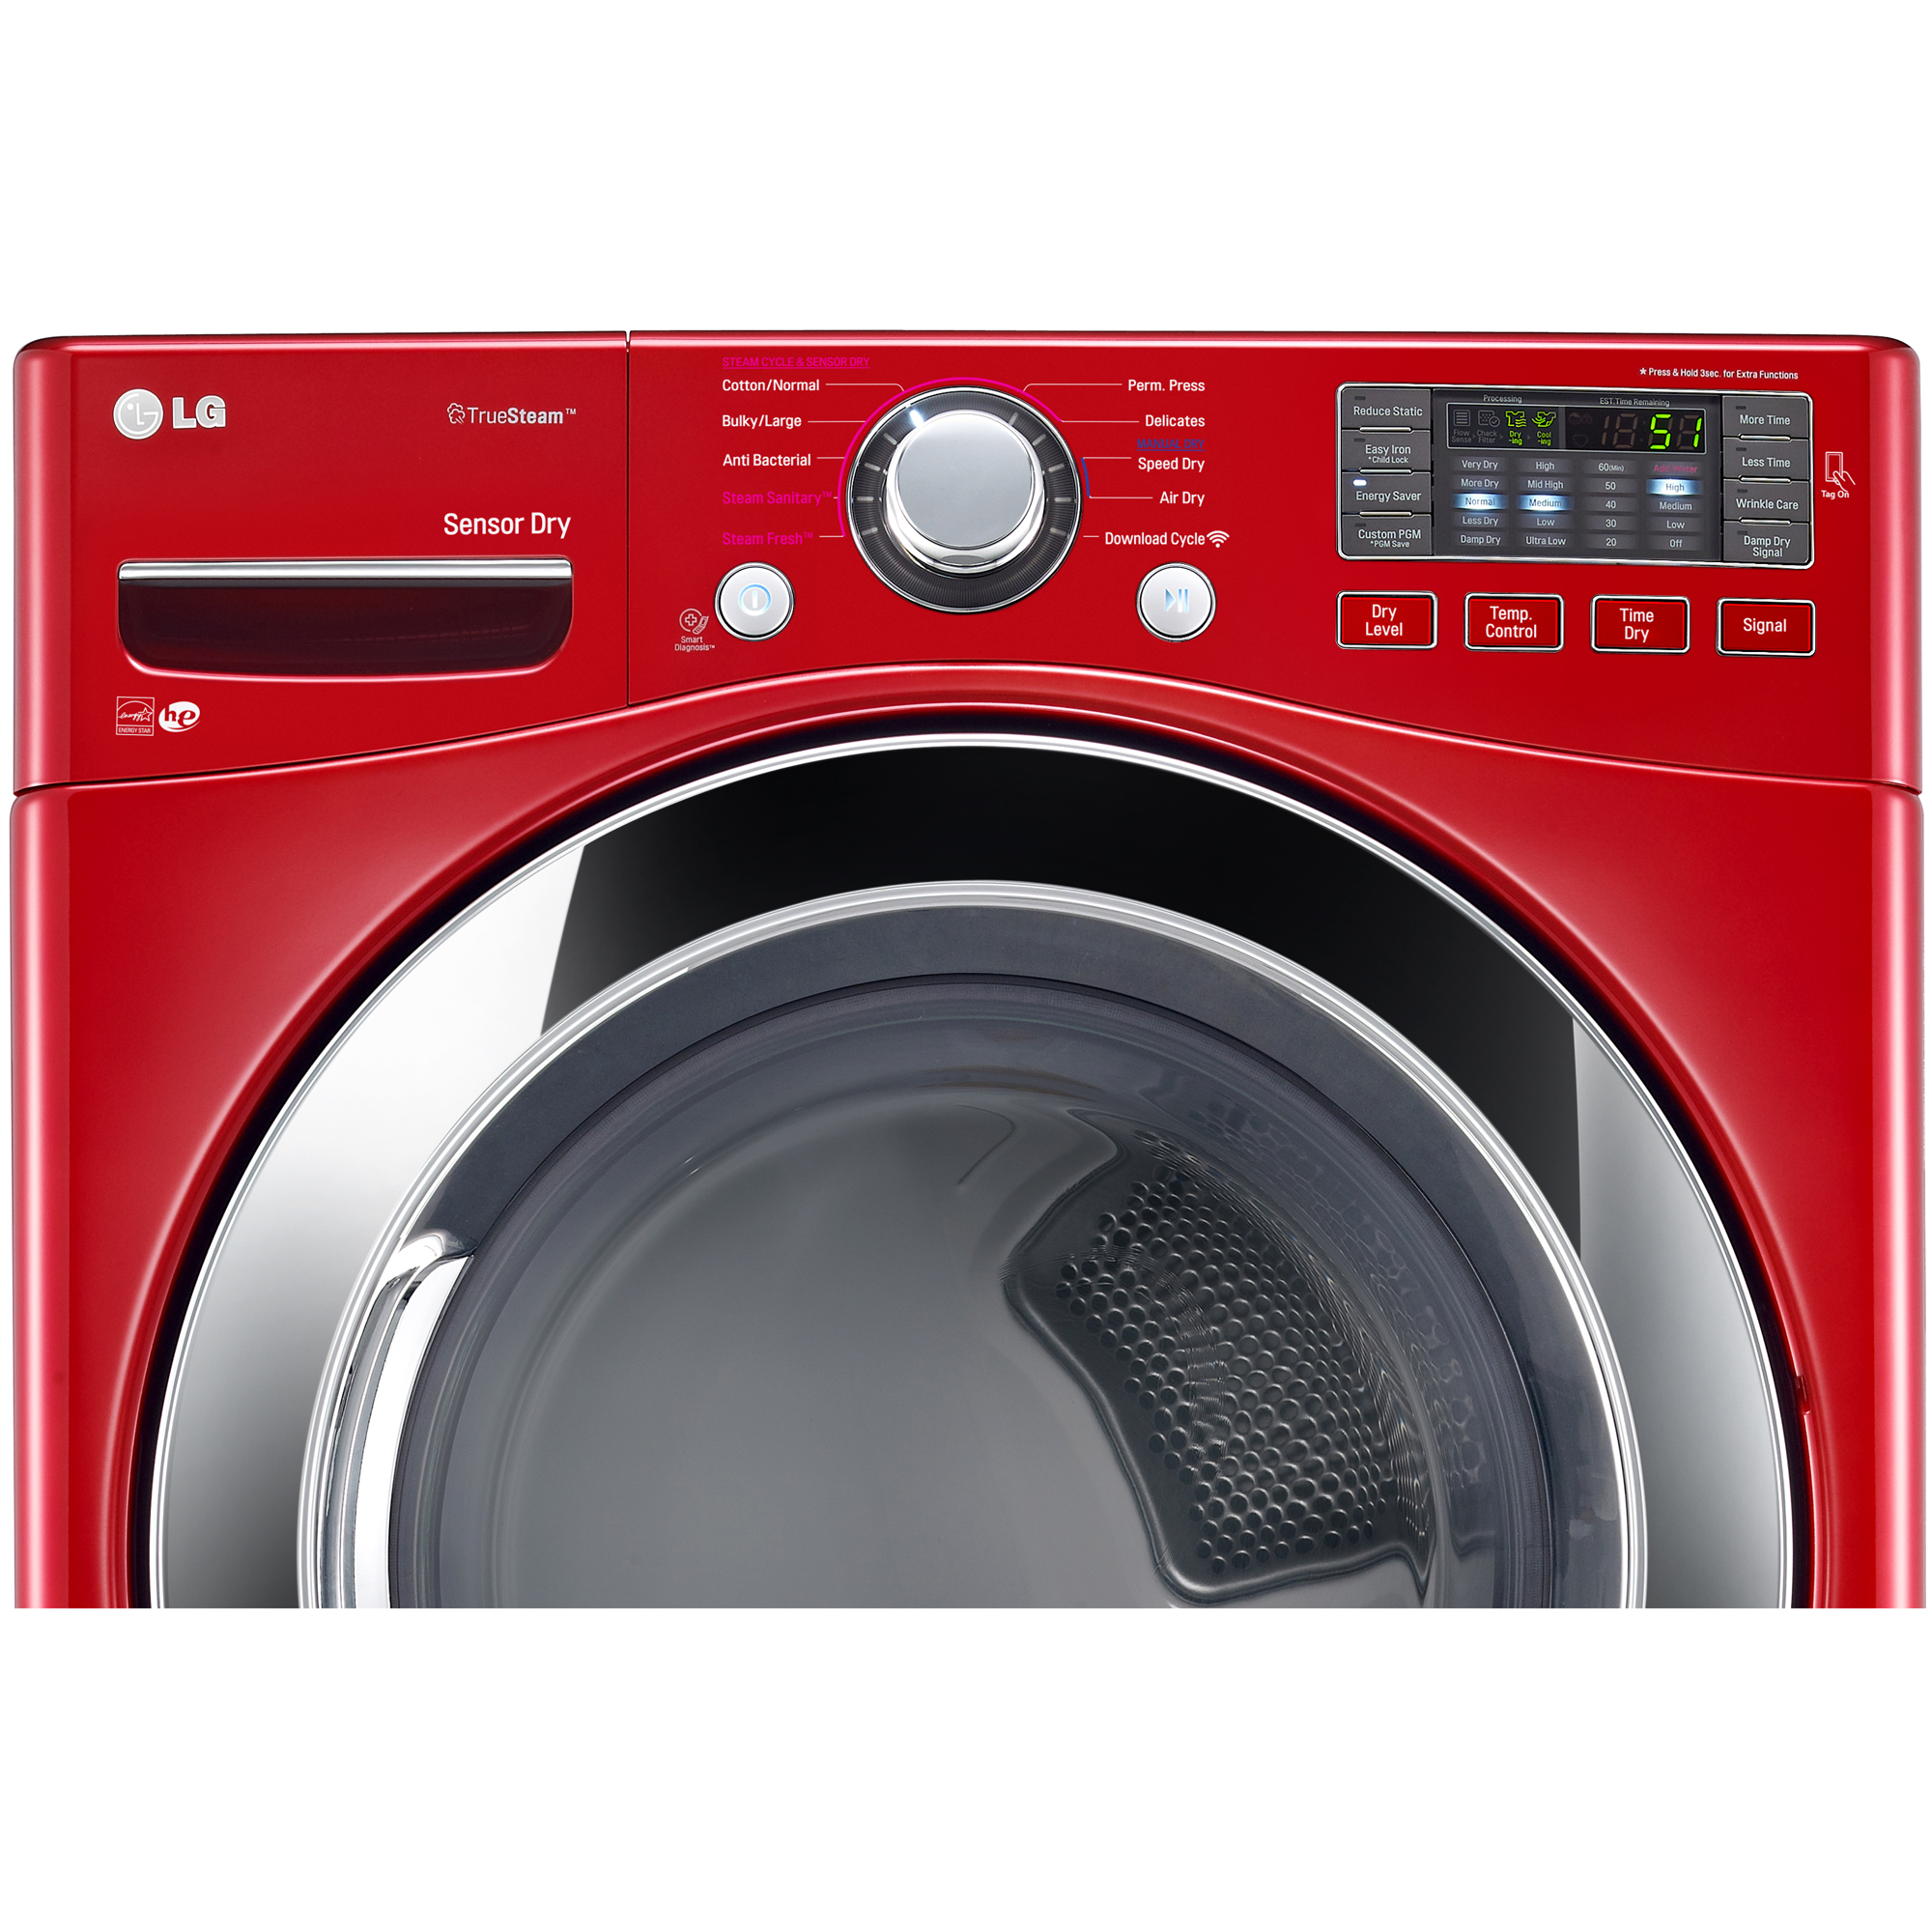 LG DLEX3370R 7.4 cu. ft. Ultra Large Capacity Electric Dryer w/ Steam – Red